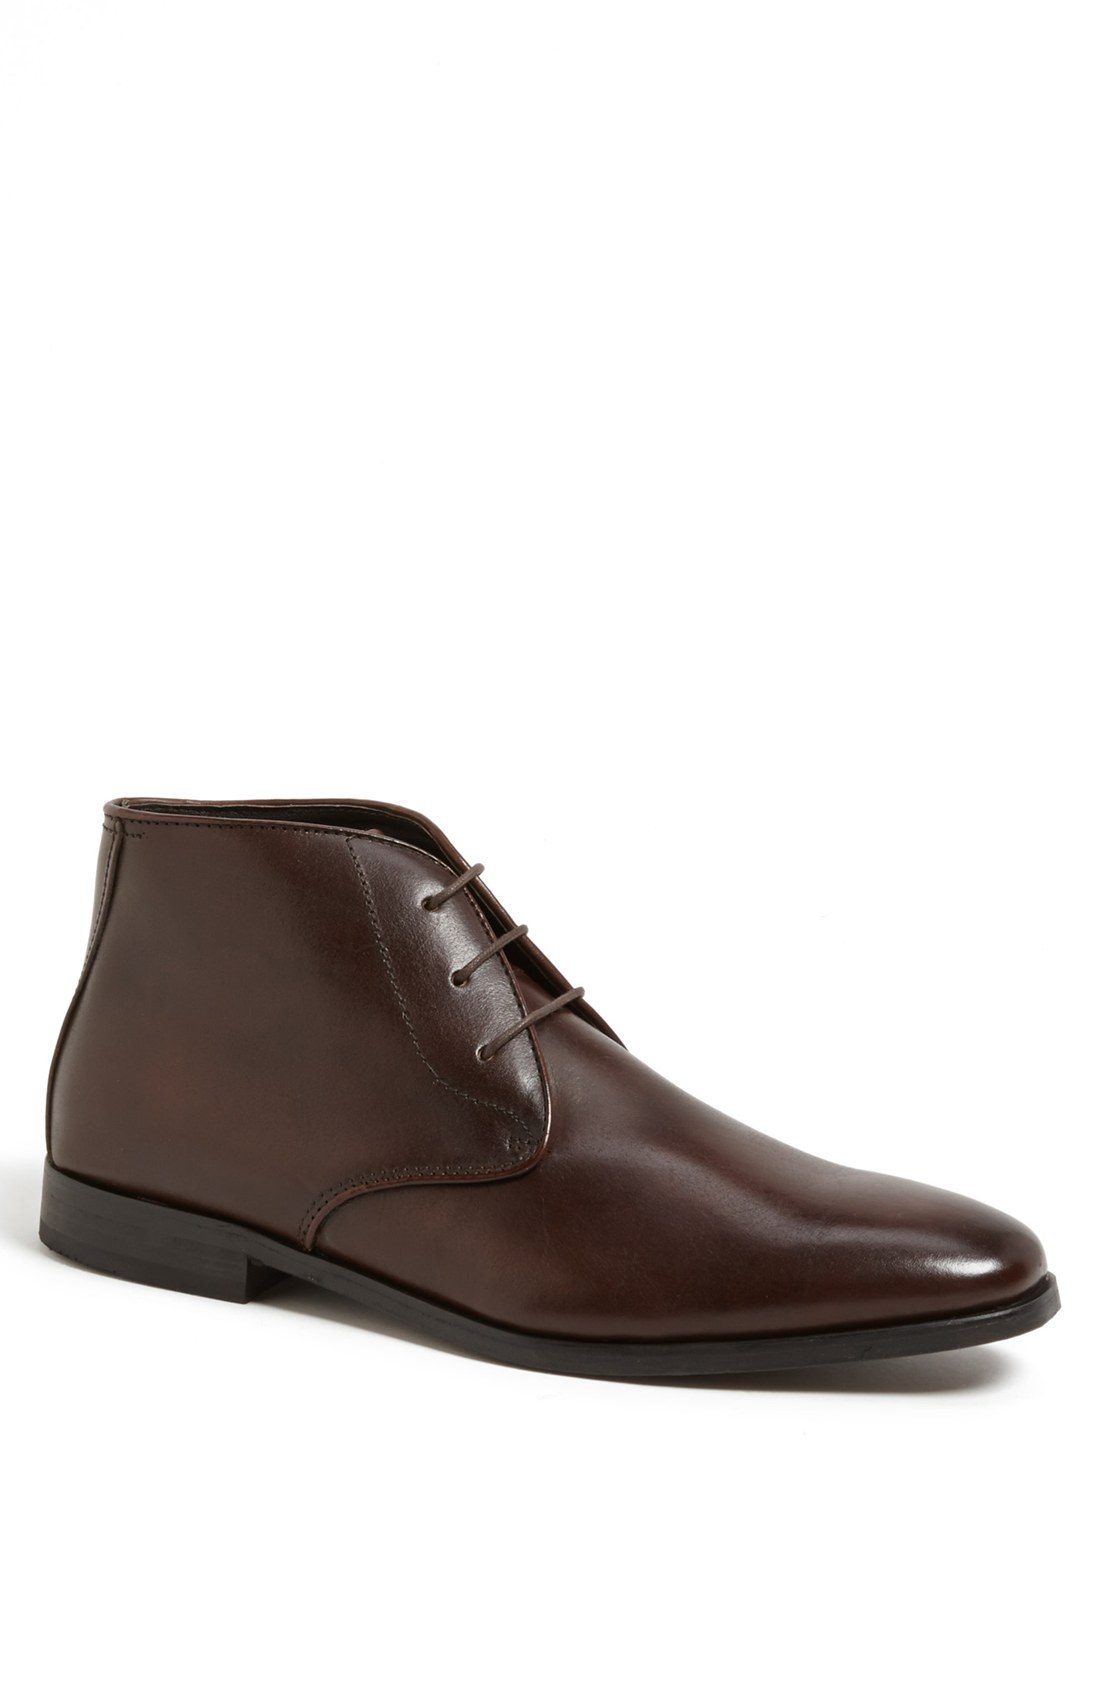 florsheim jet chukka boot in brown for lyst